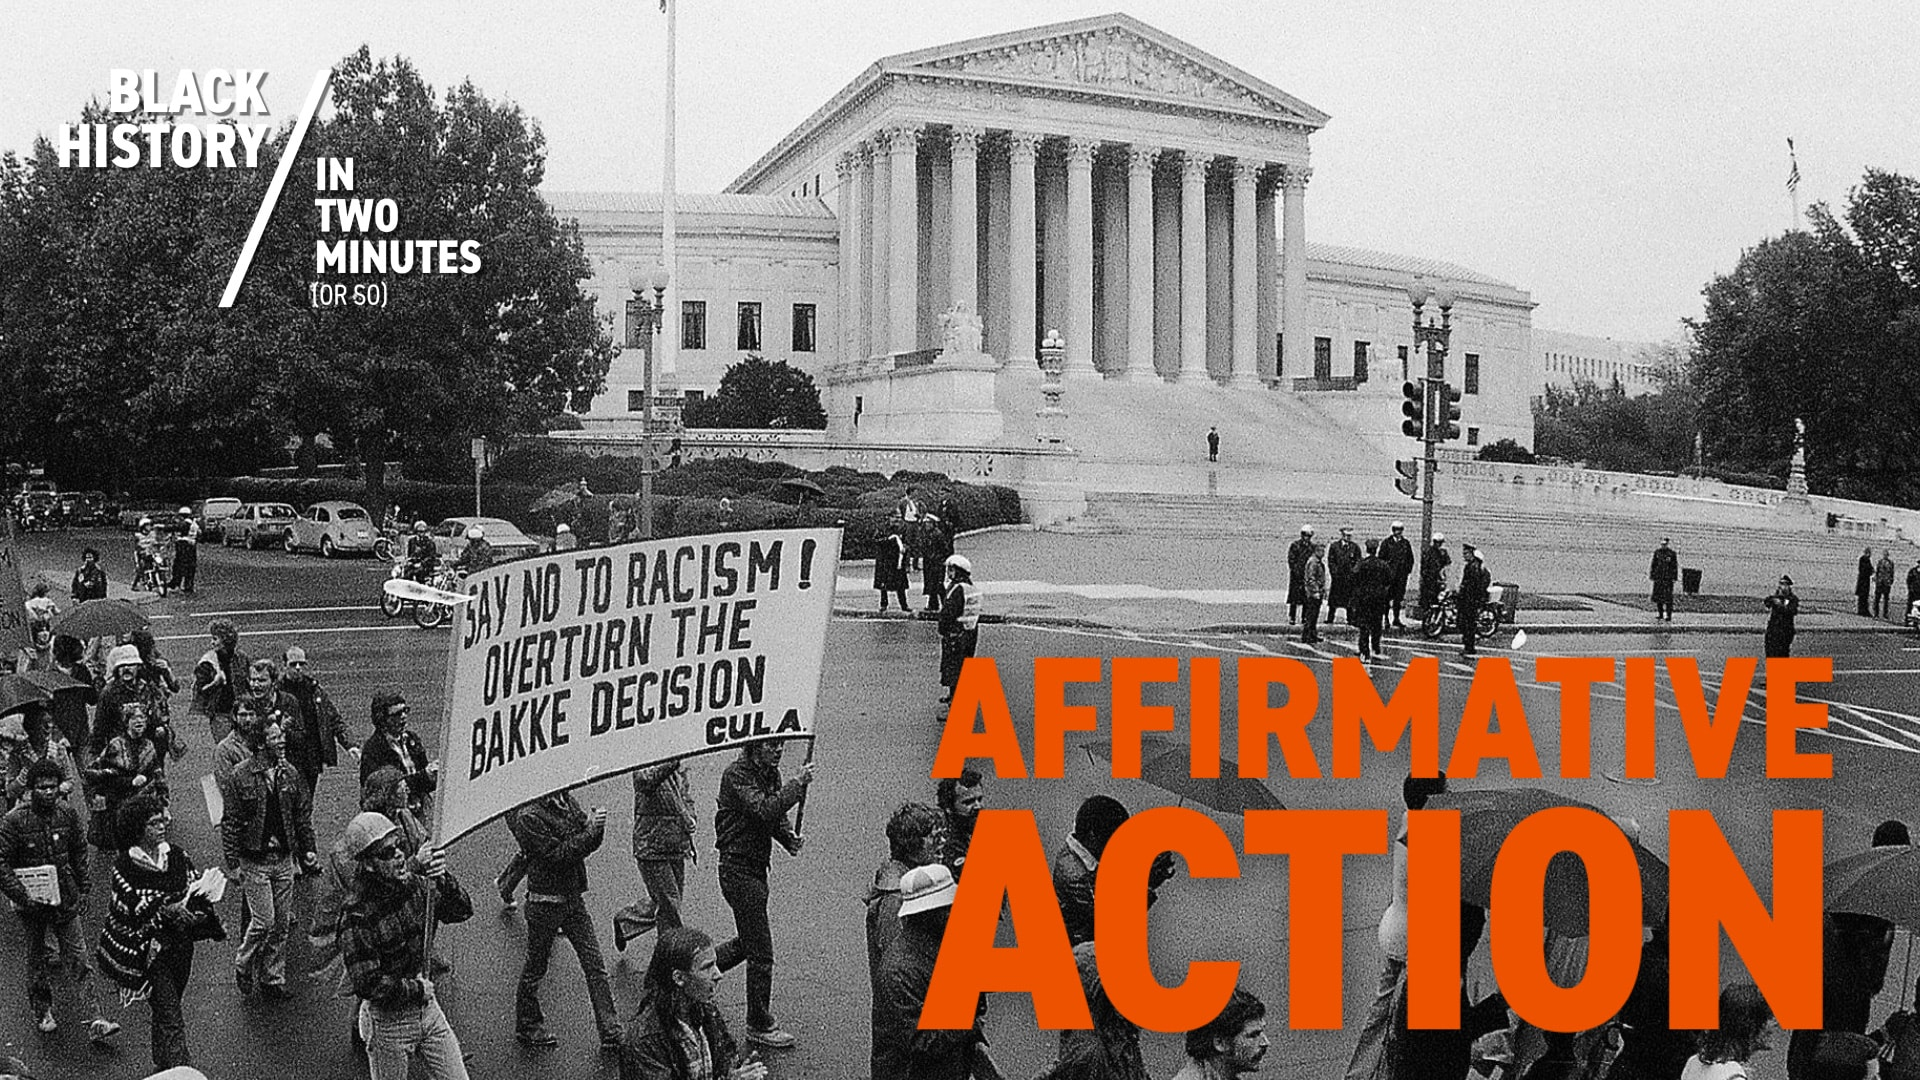 Affirmative Action | Black History in Two Minutes